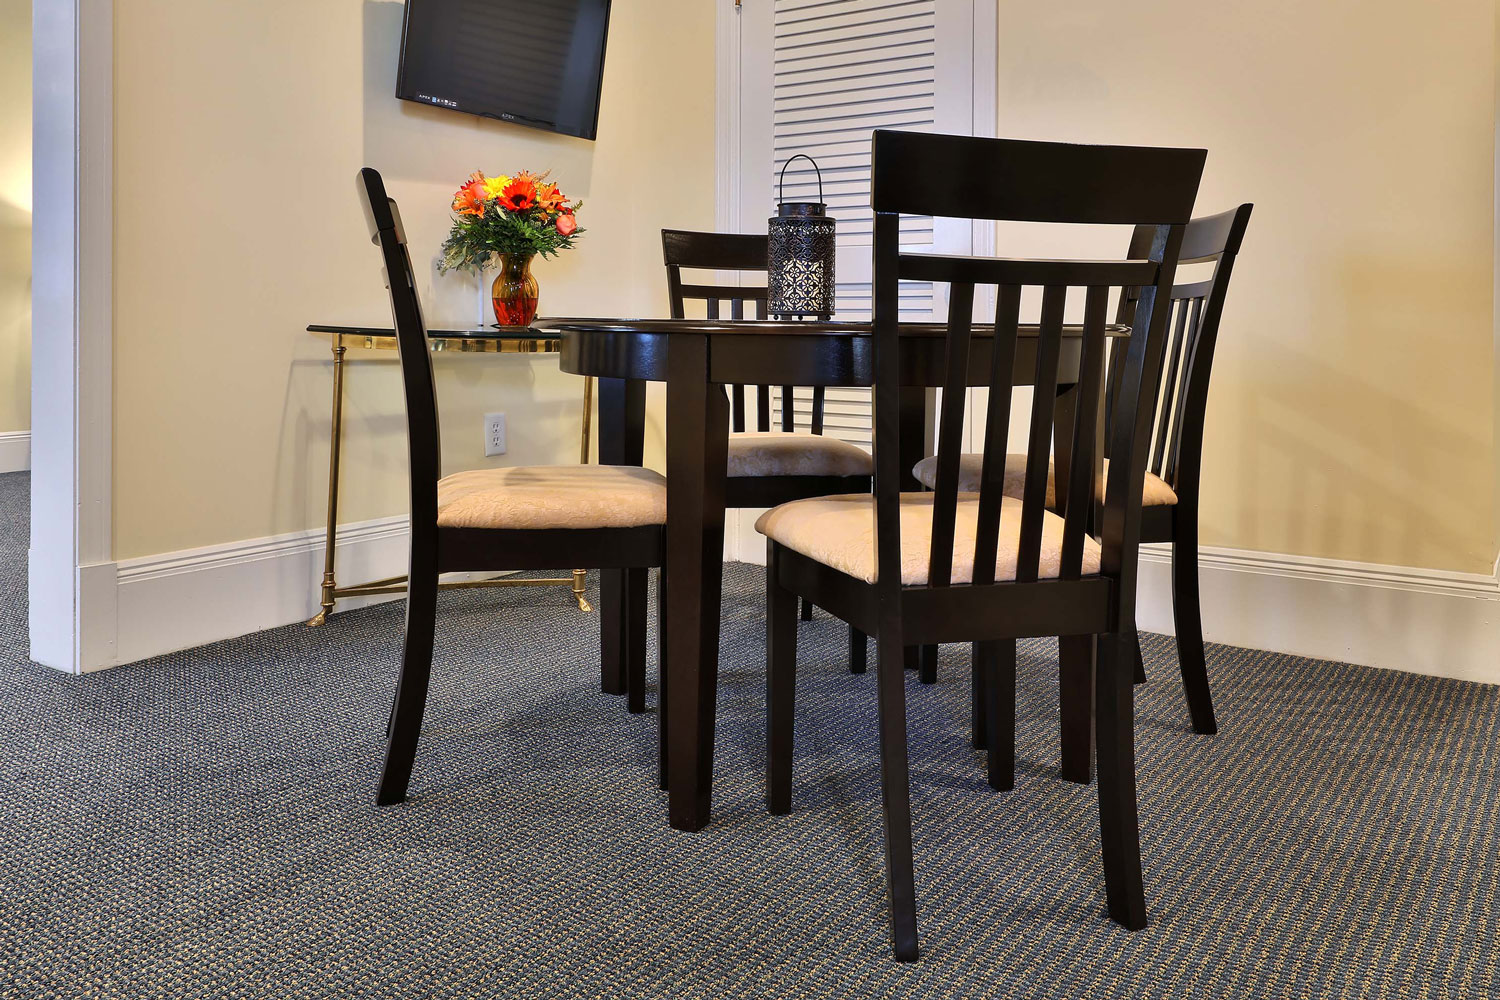 Funeral home family meeting area design.